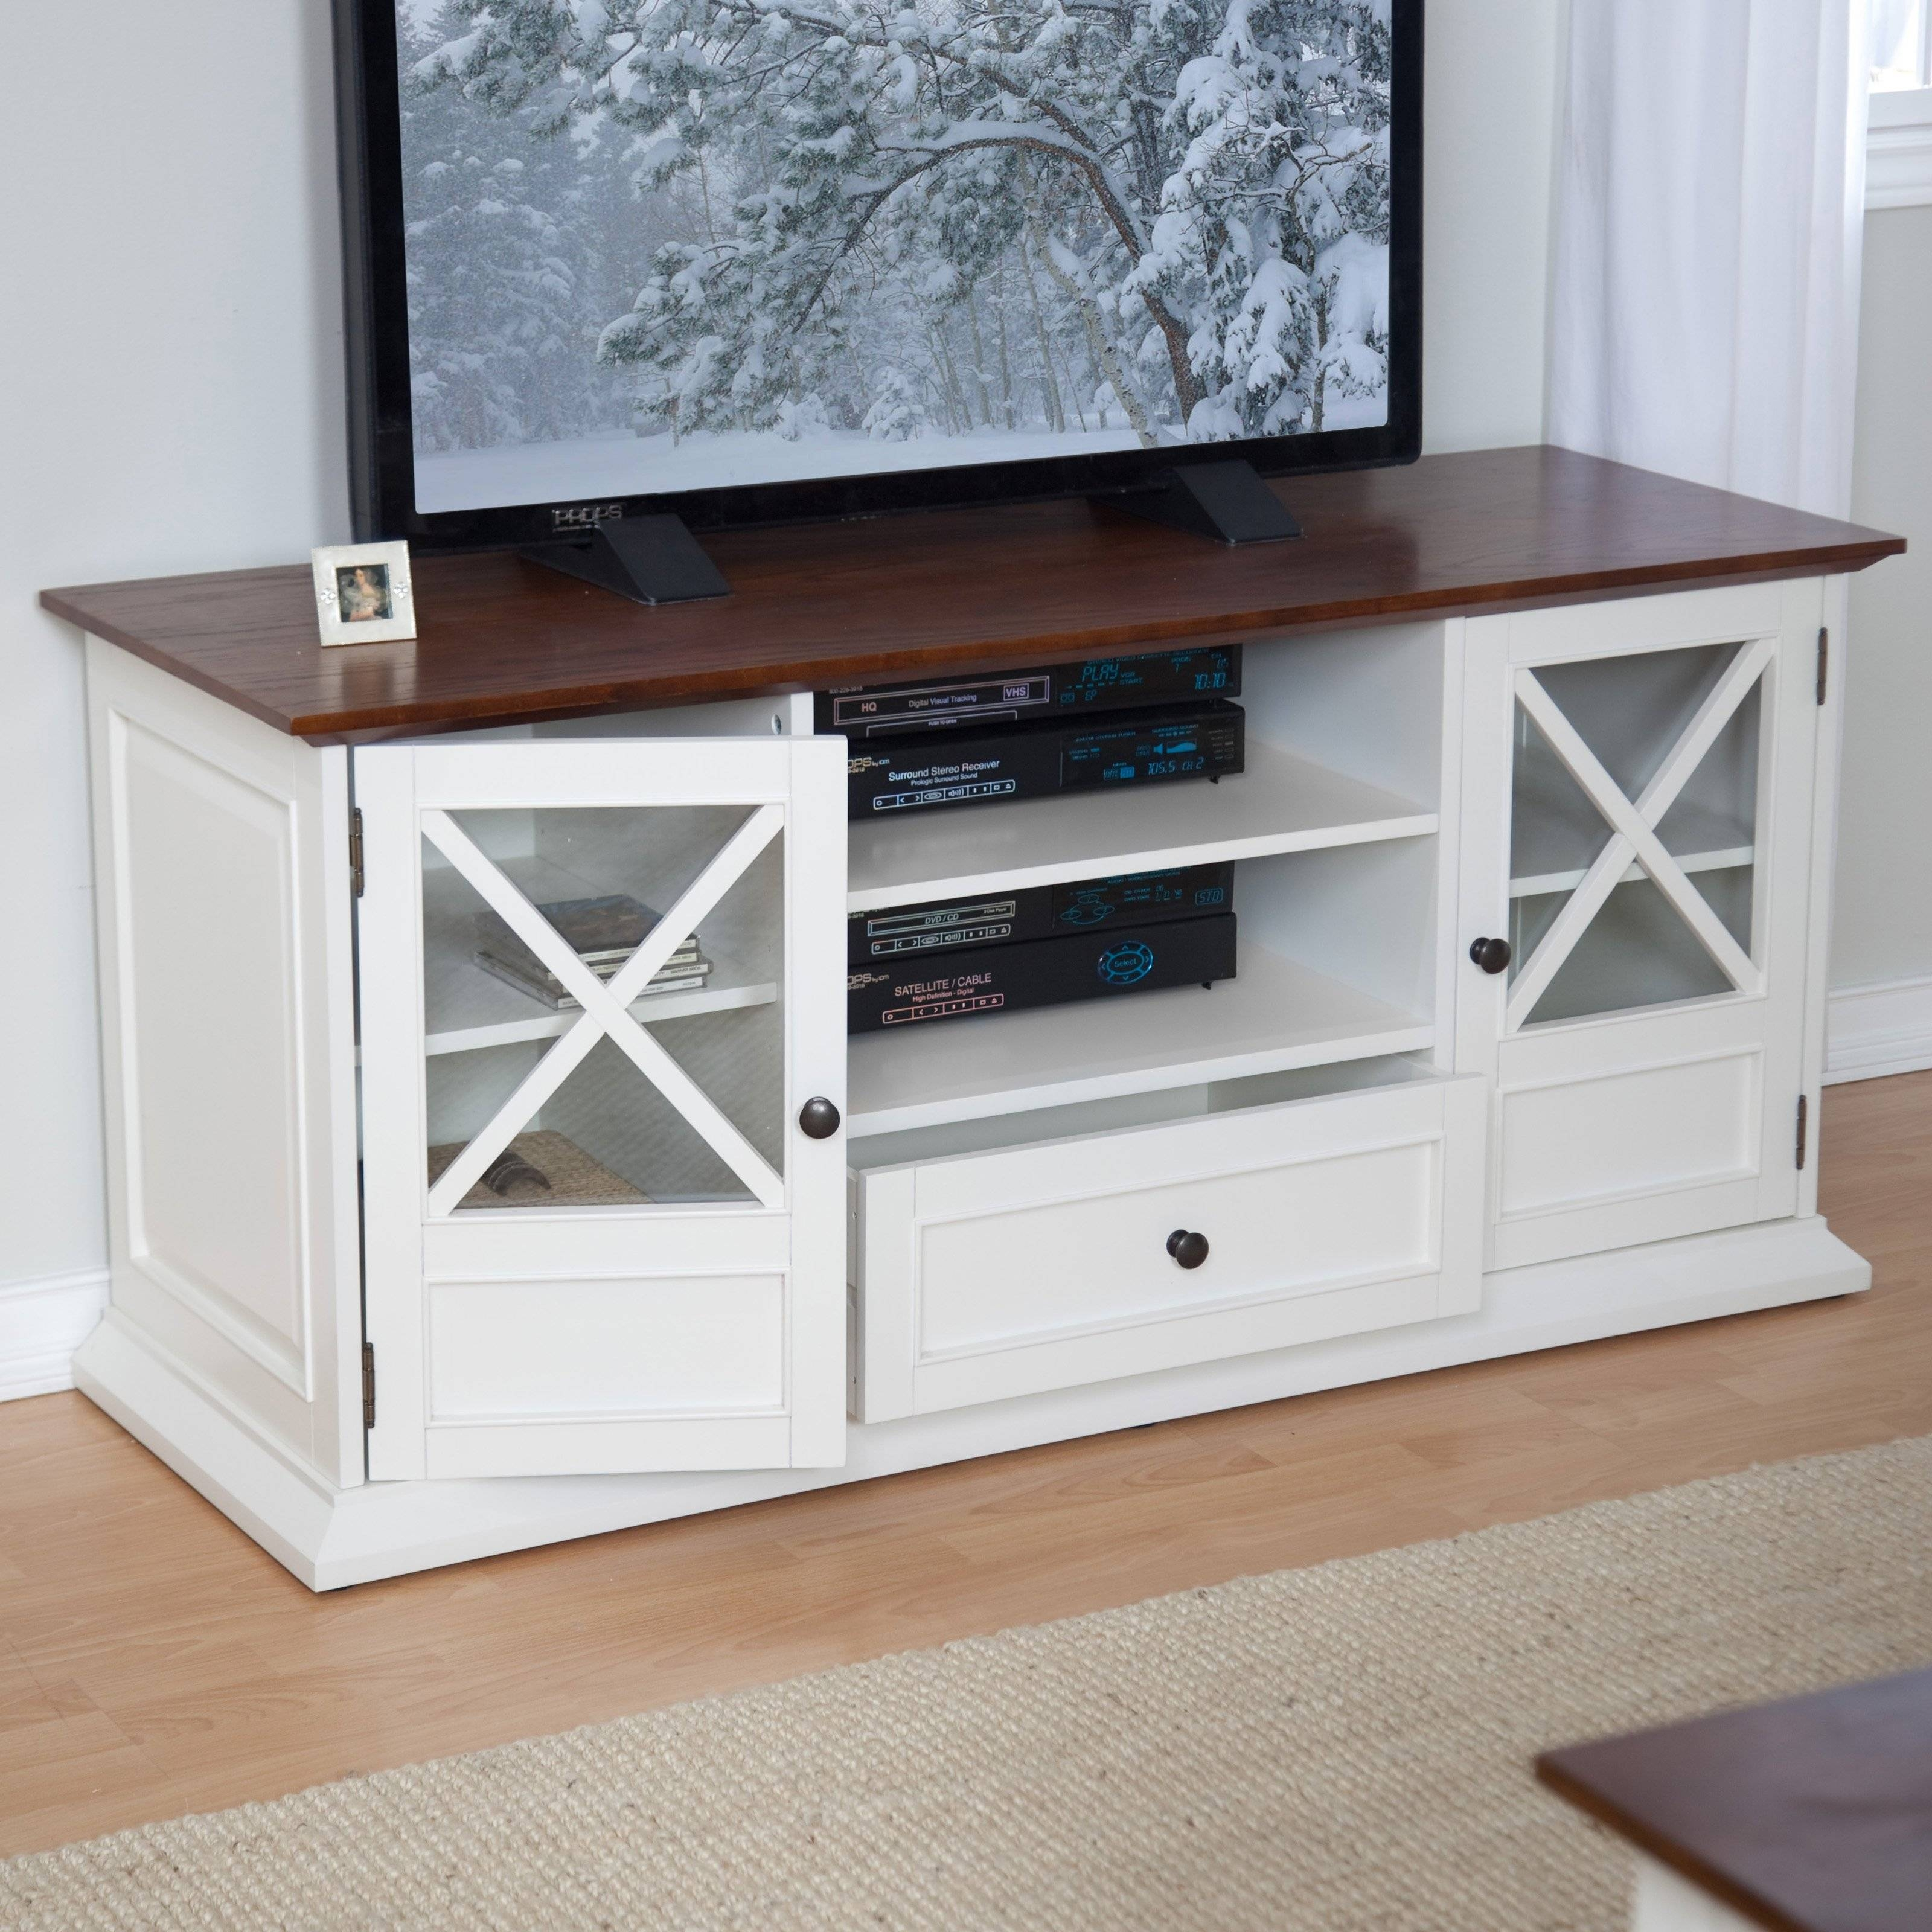 Belham Living Hampton Tv Stand - White/oak | Hayneedle inside White And Wood Tv Stands (Image 2 of 15)